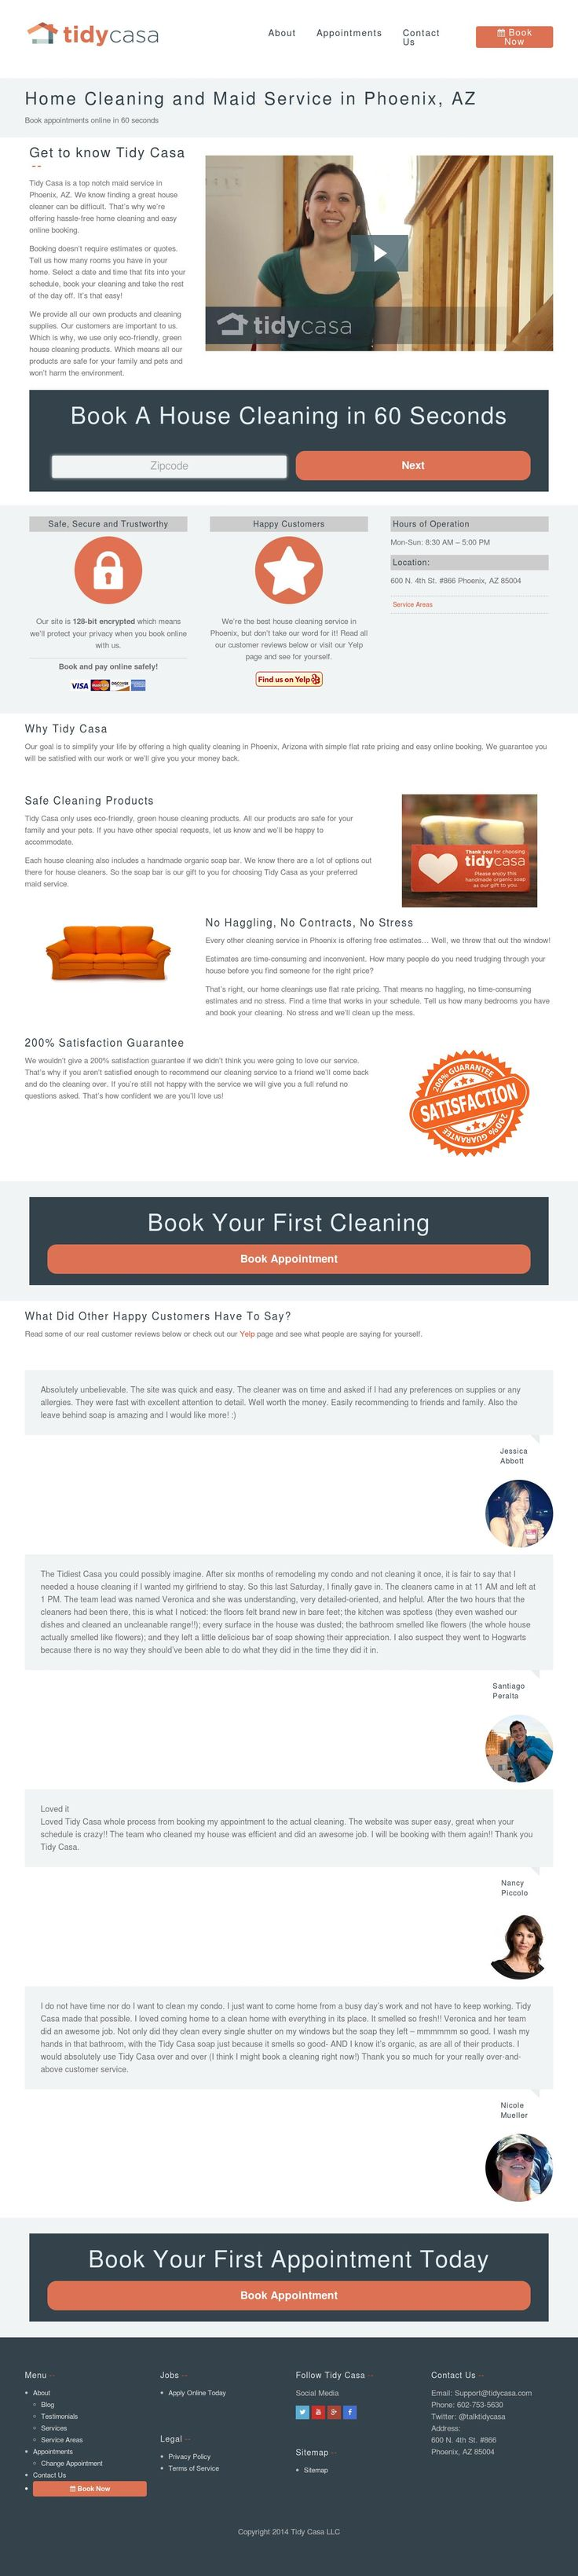 1000+ ideas about Home Maid Services on Pinterest   House cleaning ...